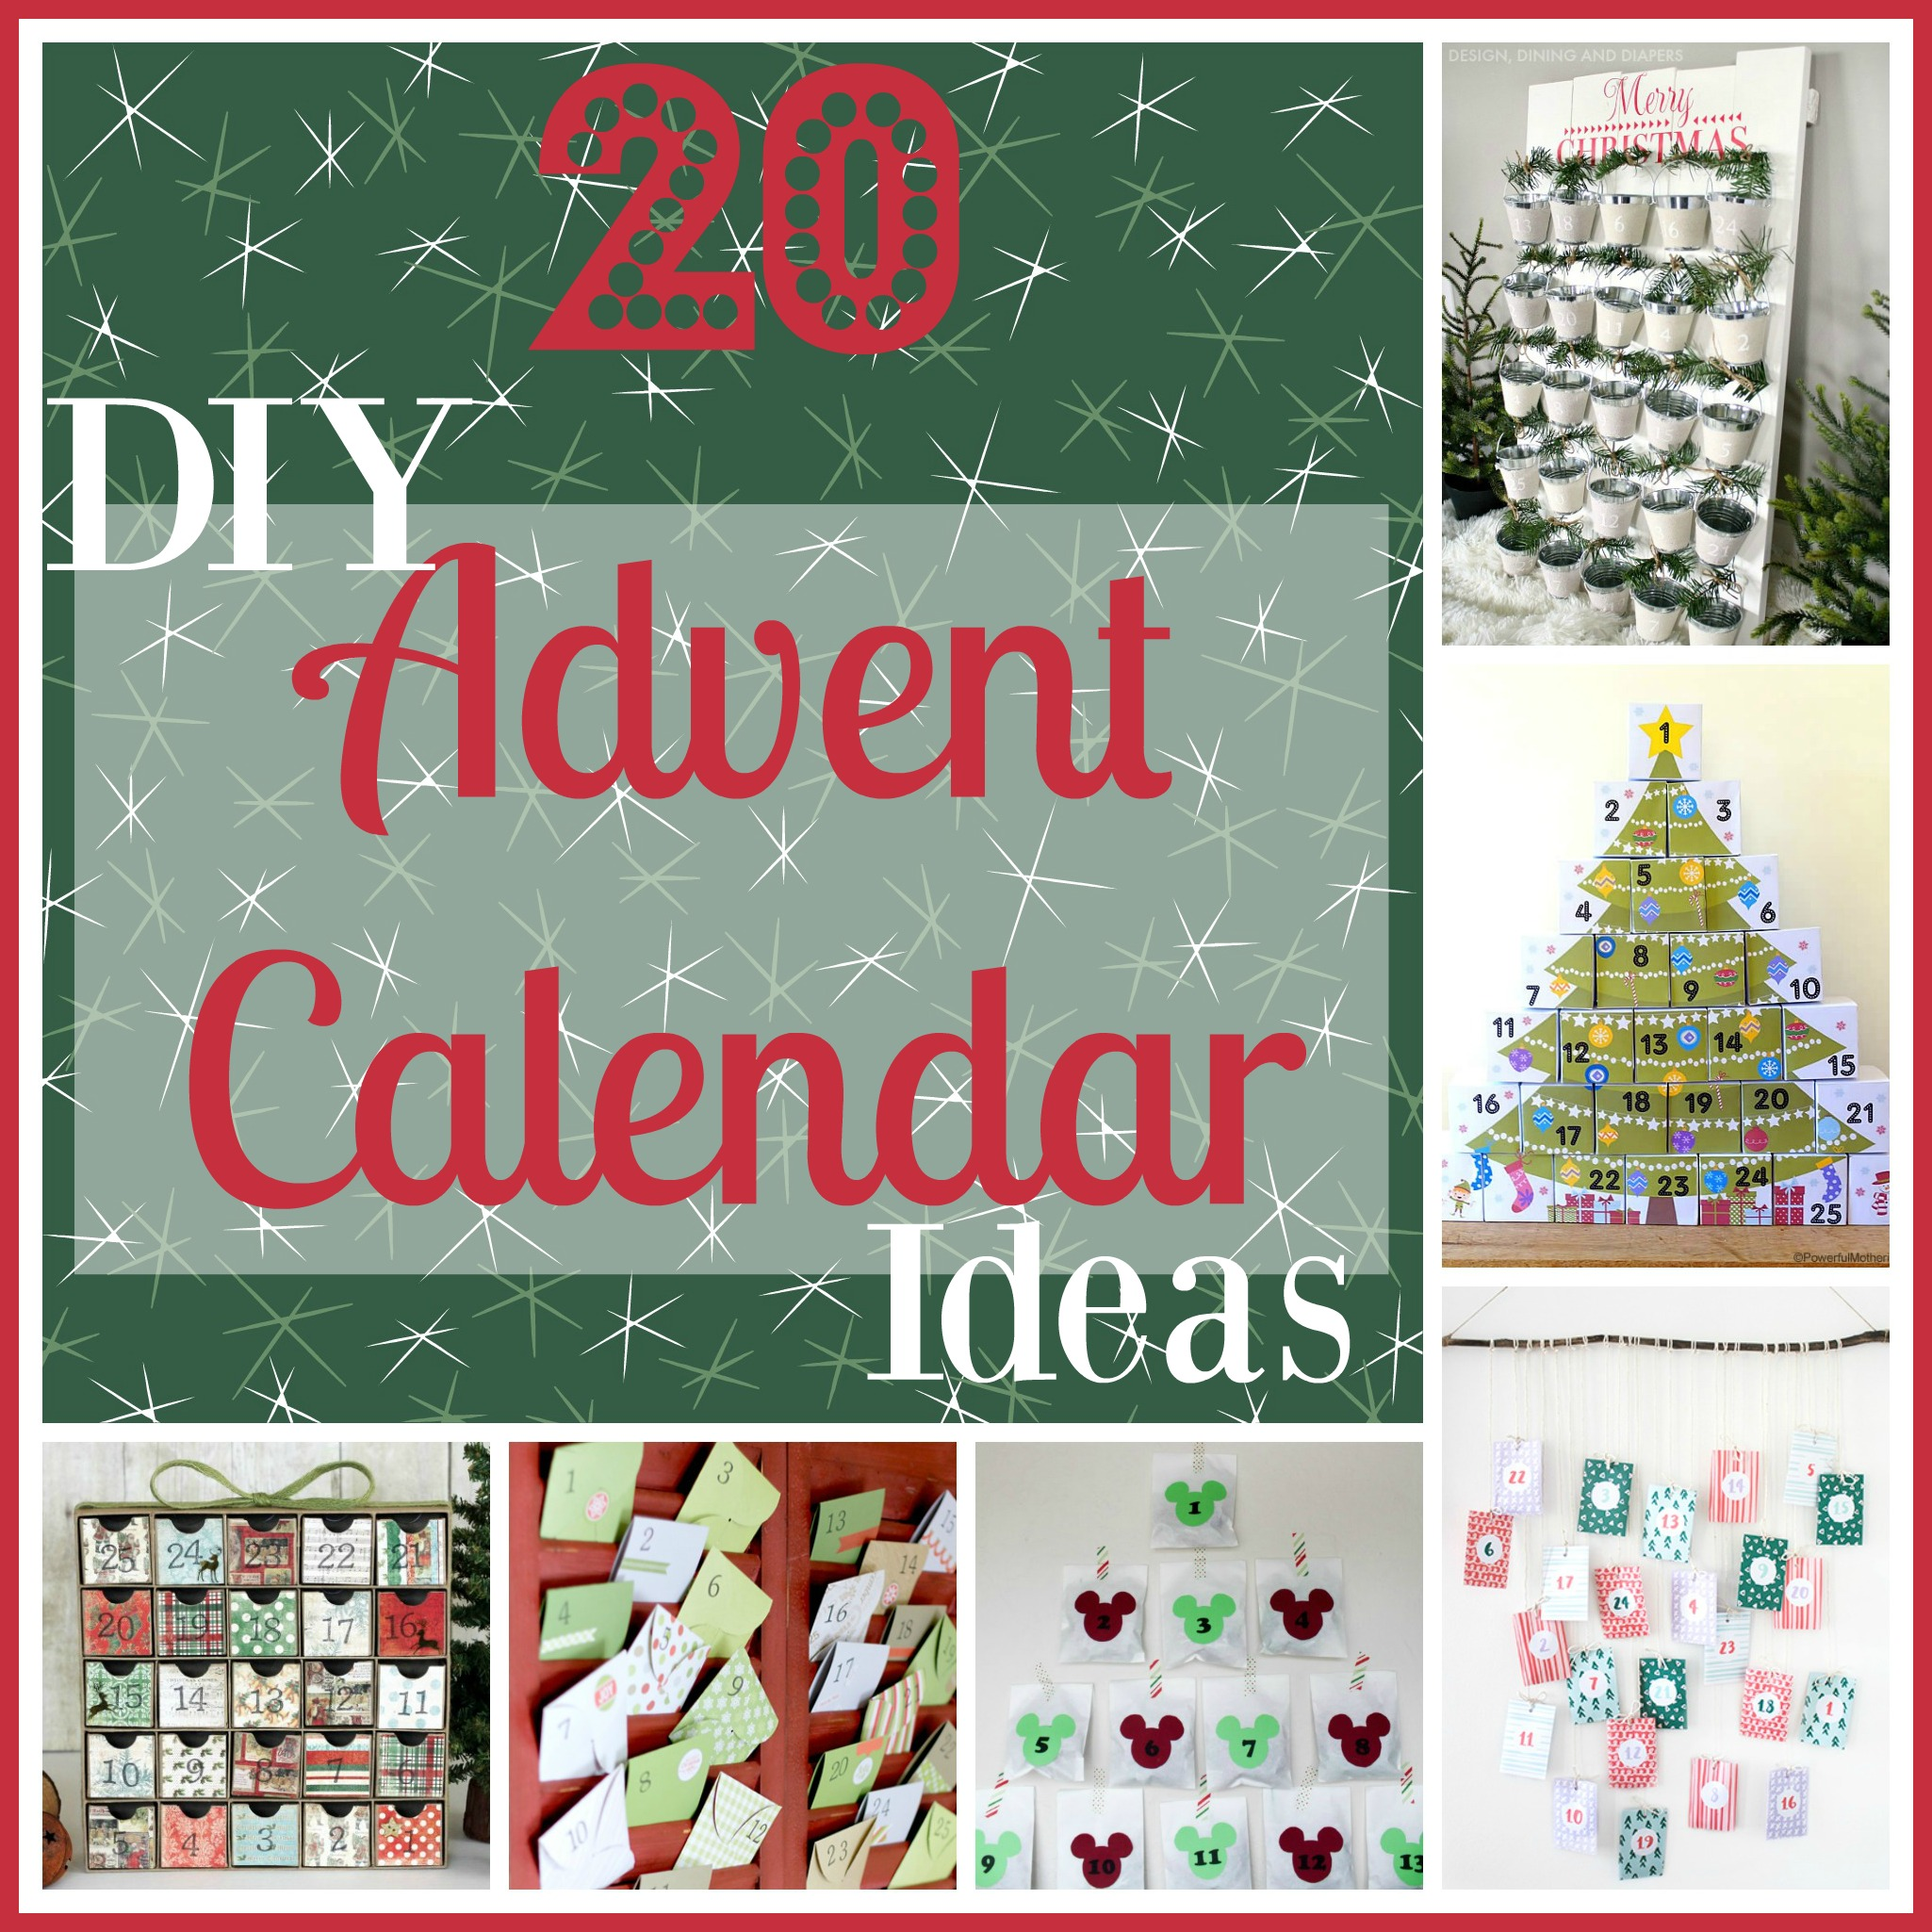 20 diy christmas advent calendar ideas livin the mommy life 20 diy advent calendar ideas solutioingenieria